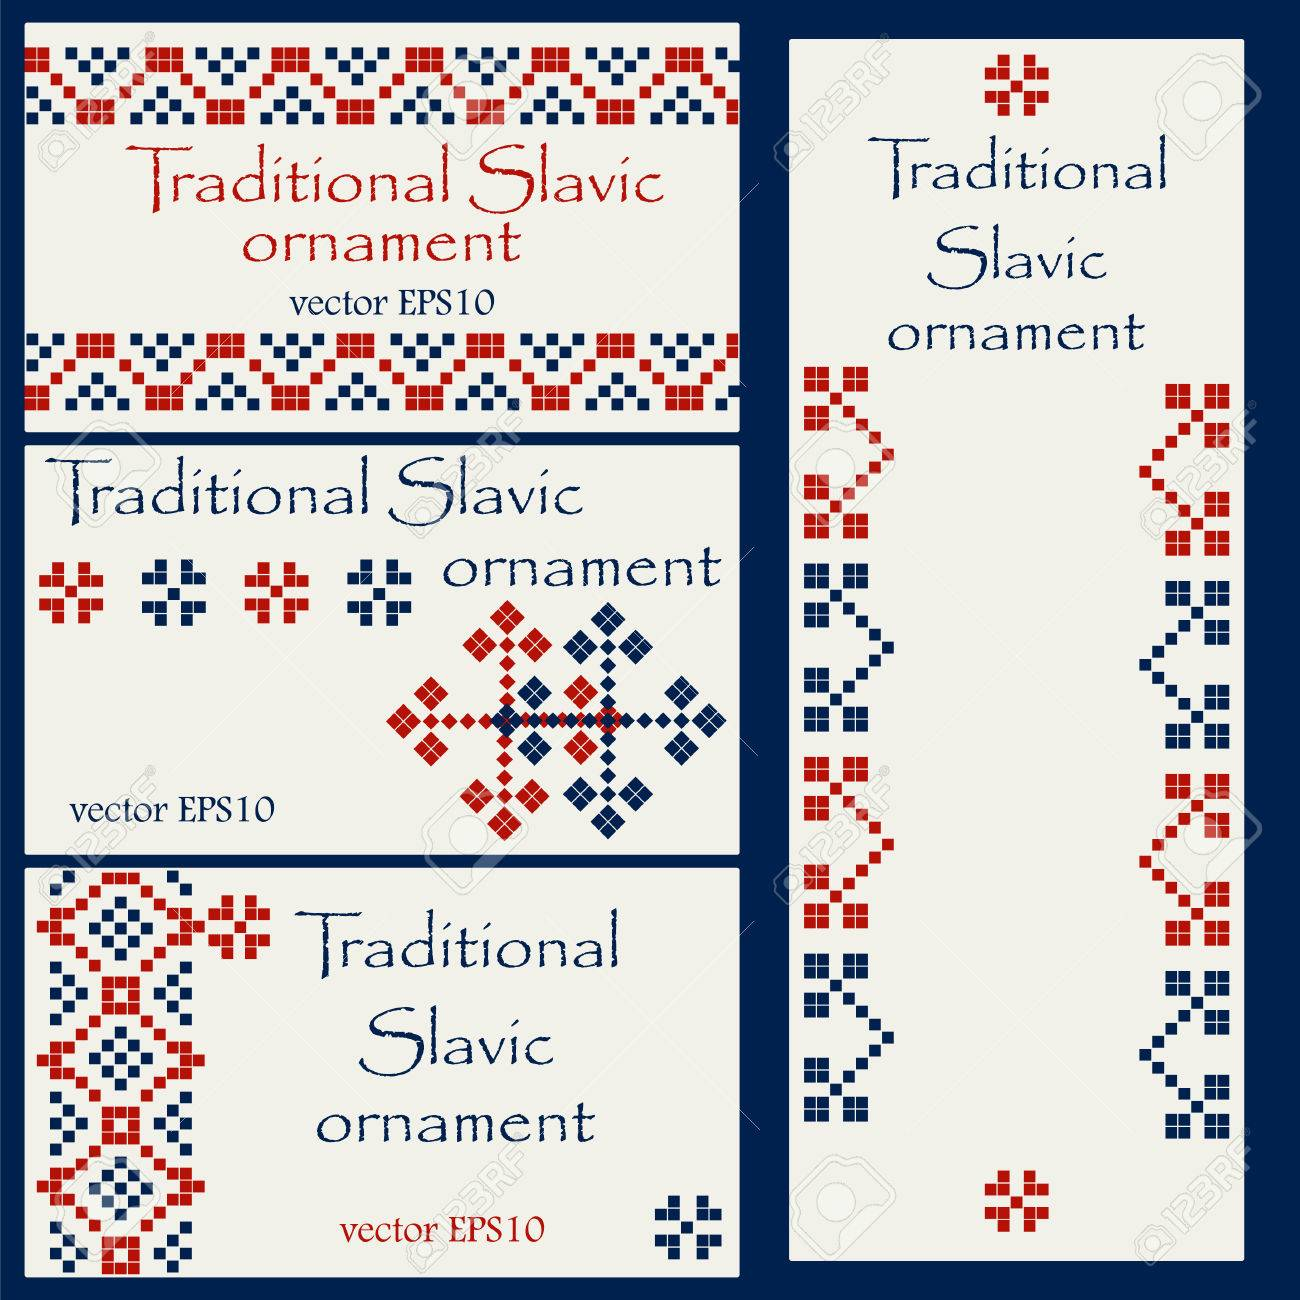 Business Card Templates With Traditional Slavic Ornament For